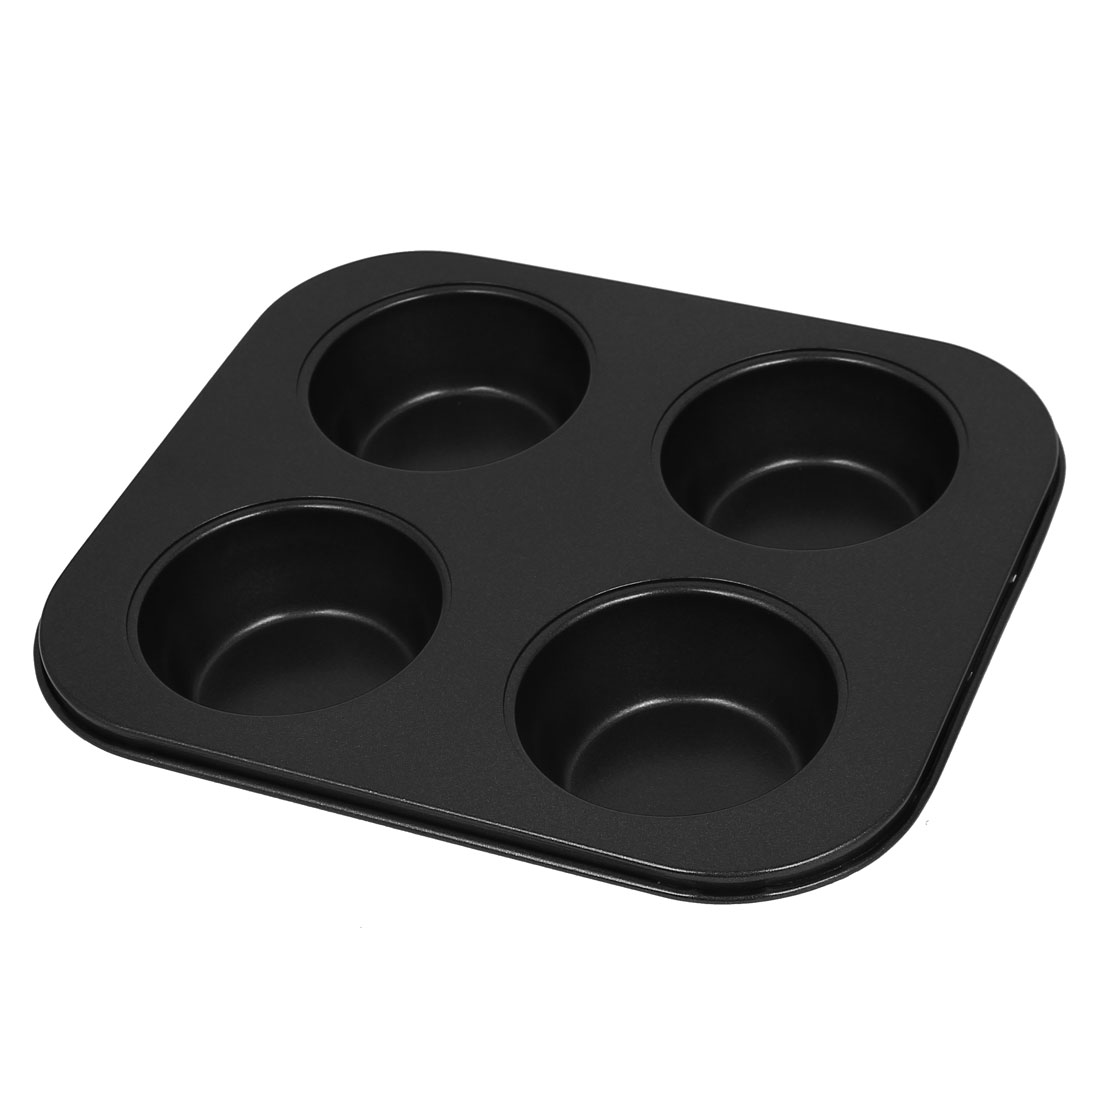 Bakery Non-stick 4 Compartments Cake Cupcake Baking Mold Mould Tool Black